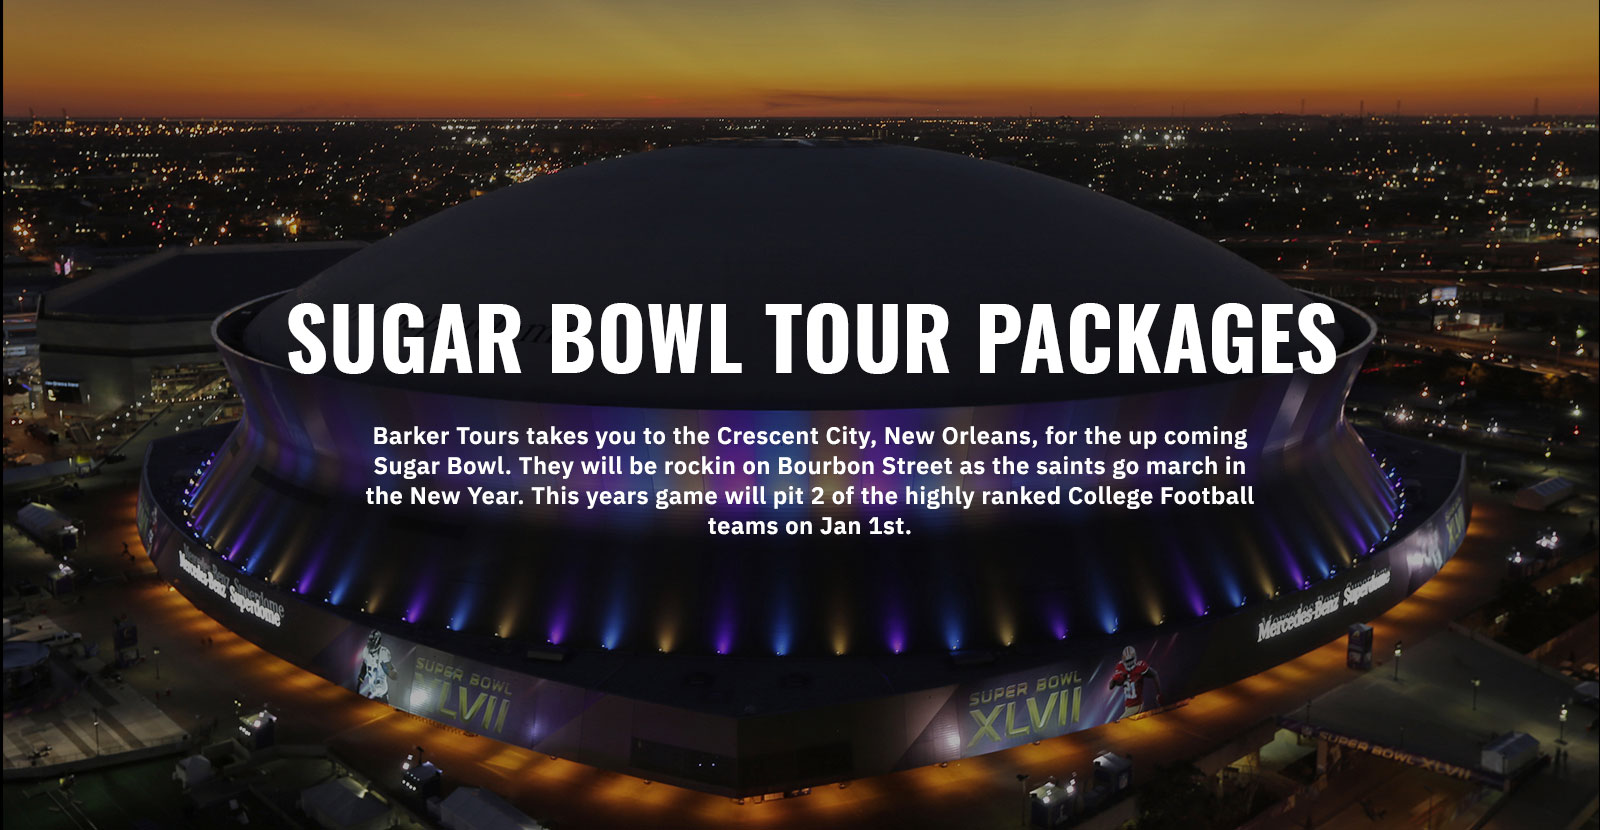 Sugar Bowl Tour Packages